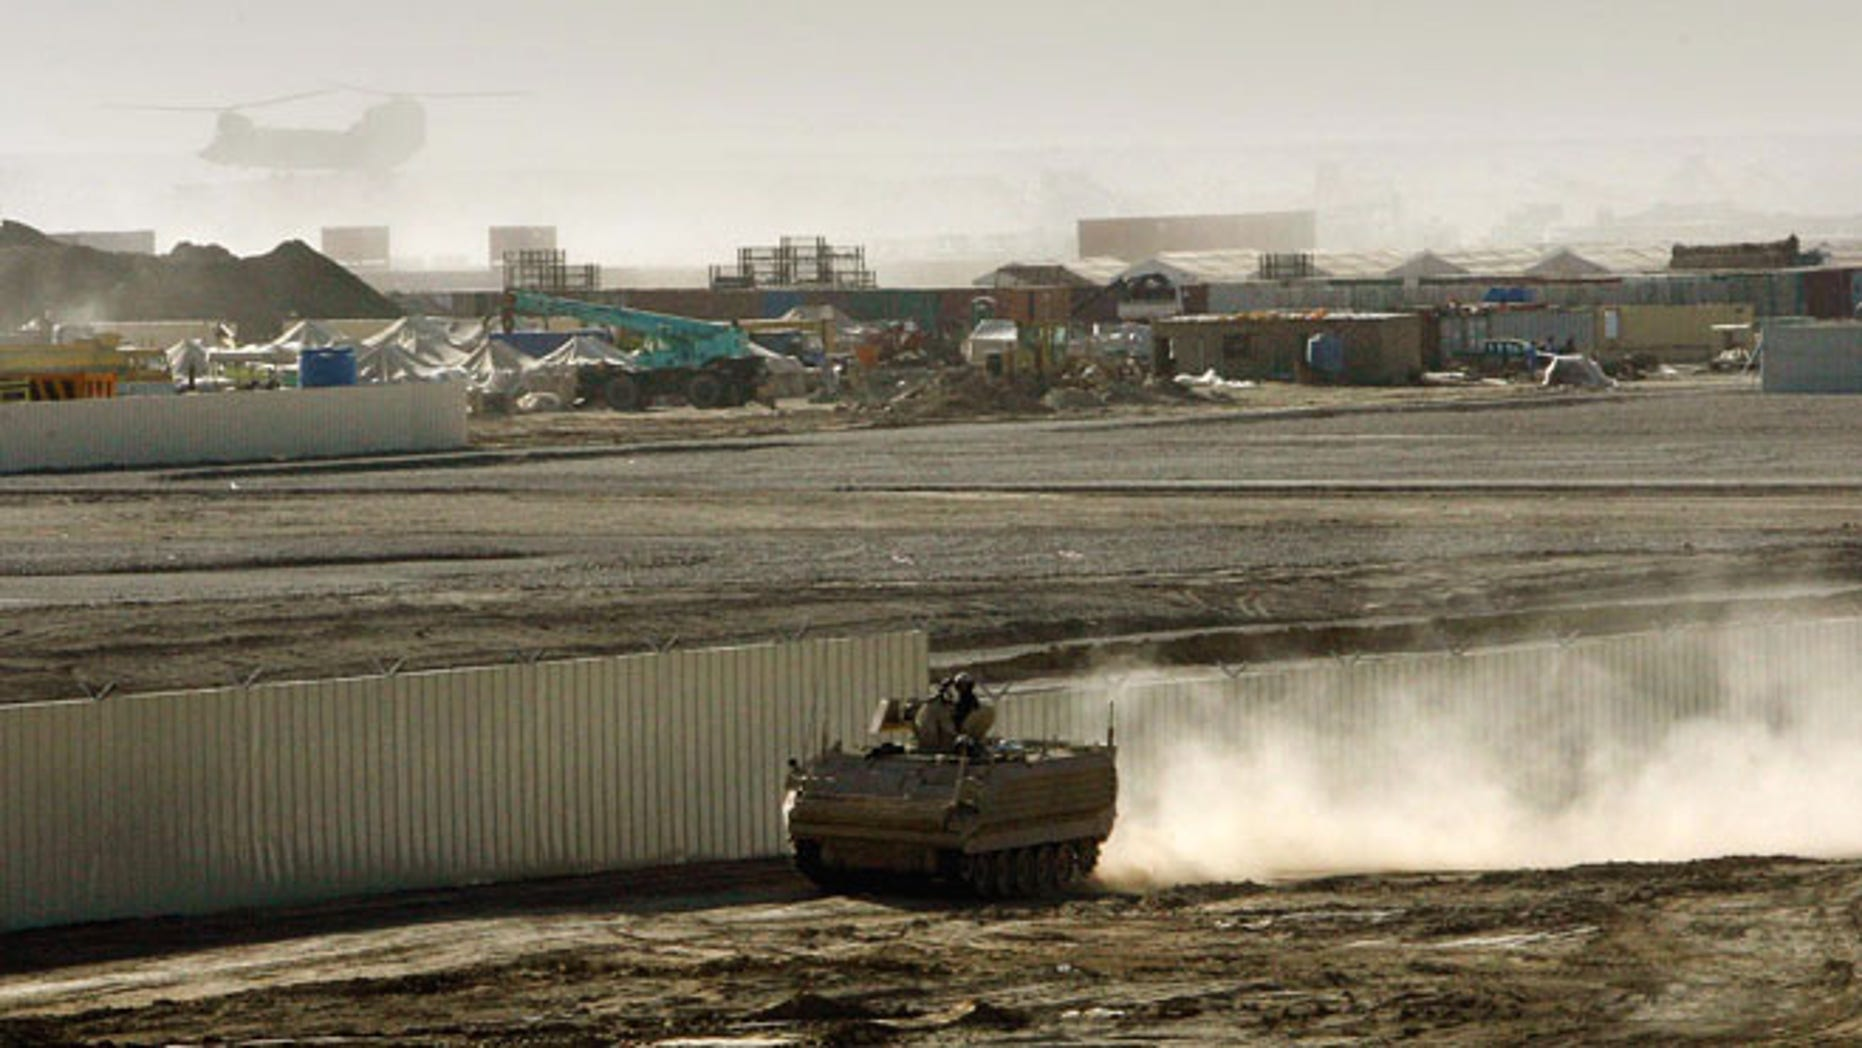 An armored vehicle patrols on the periphery of Camp Bastion in southern Afghanistan, in this Wednesday, Jan. 10, 2007 file photo.